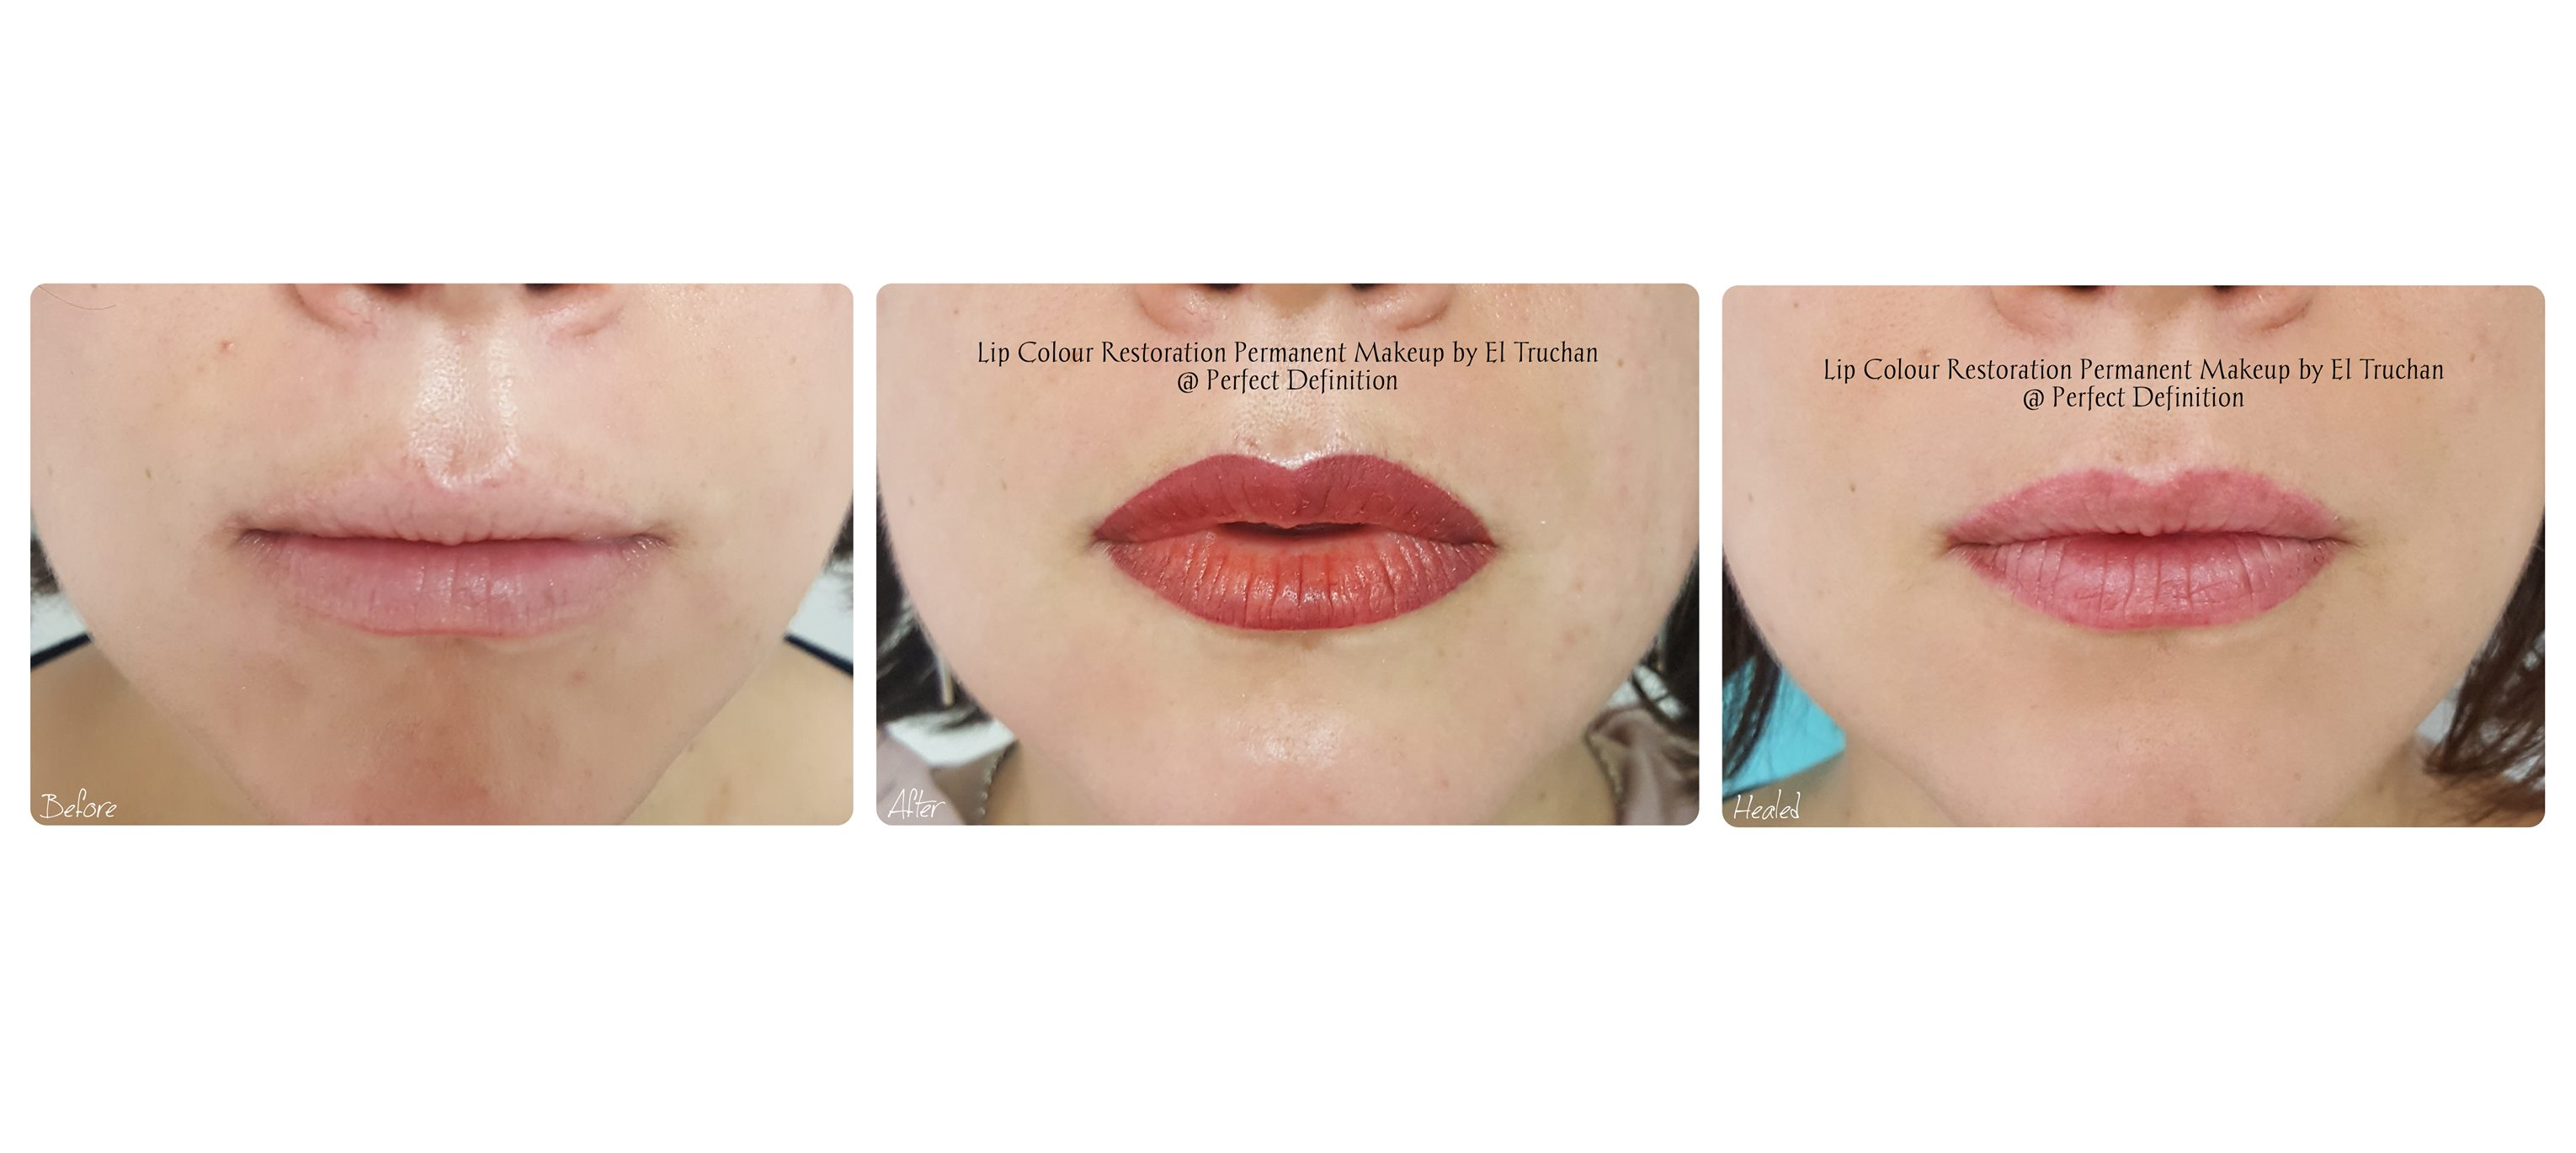 Lip Colour Restoration Permanent Makeup